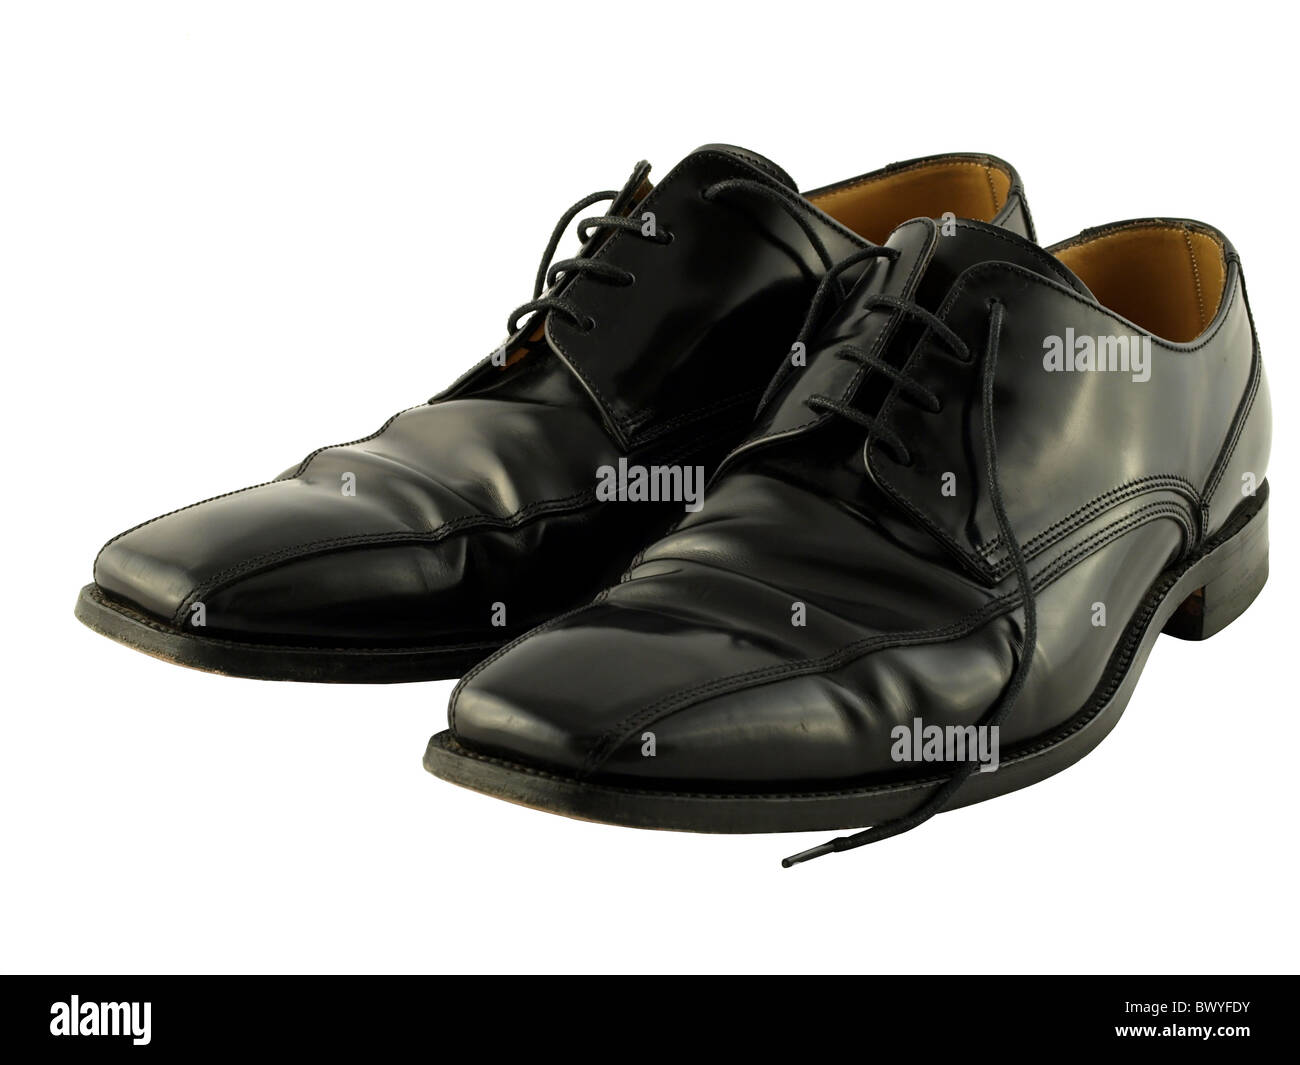 A comfortable pair of black leather traditional lace up shoes. - Stock Image